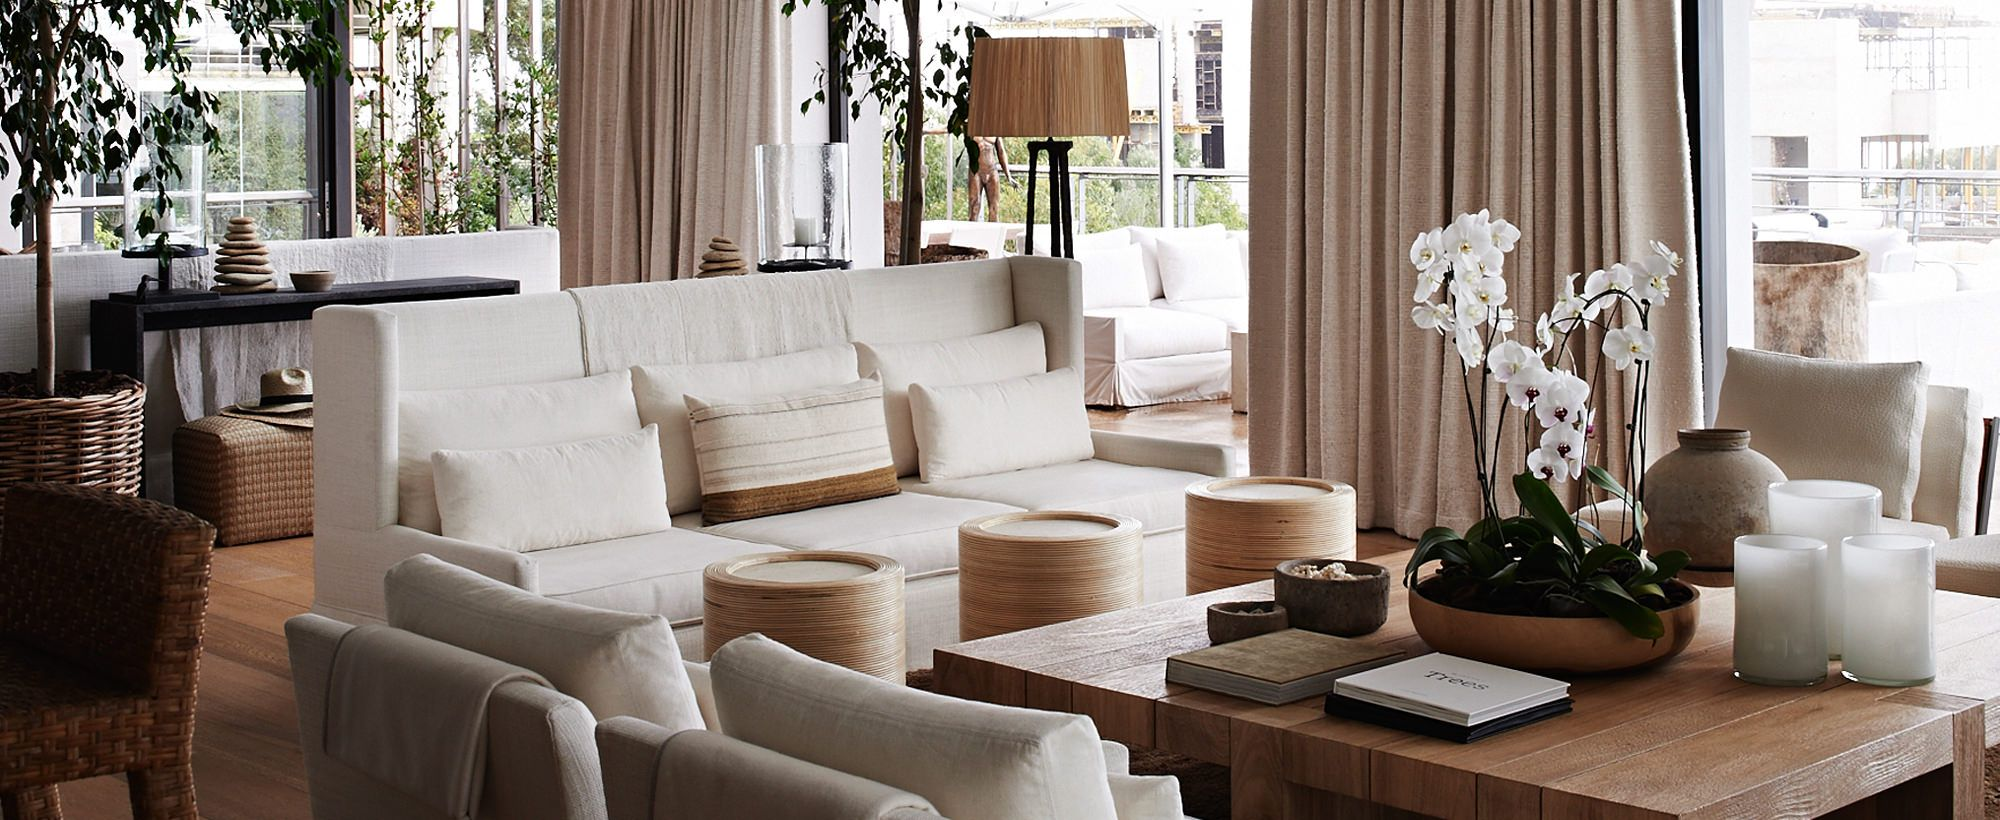 Arcadia House Cecile Boyd Home Luxury Living Room African Interior Design